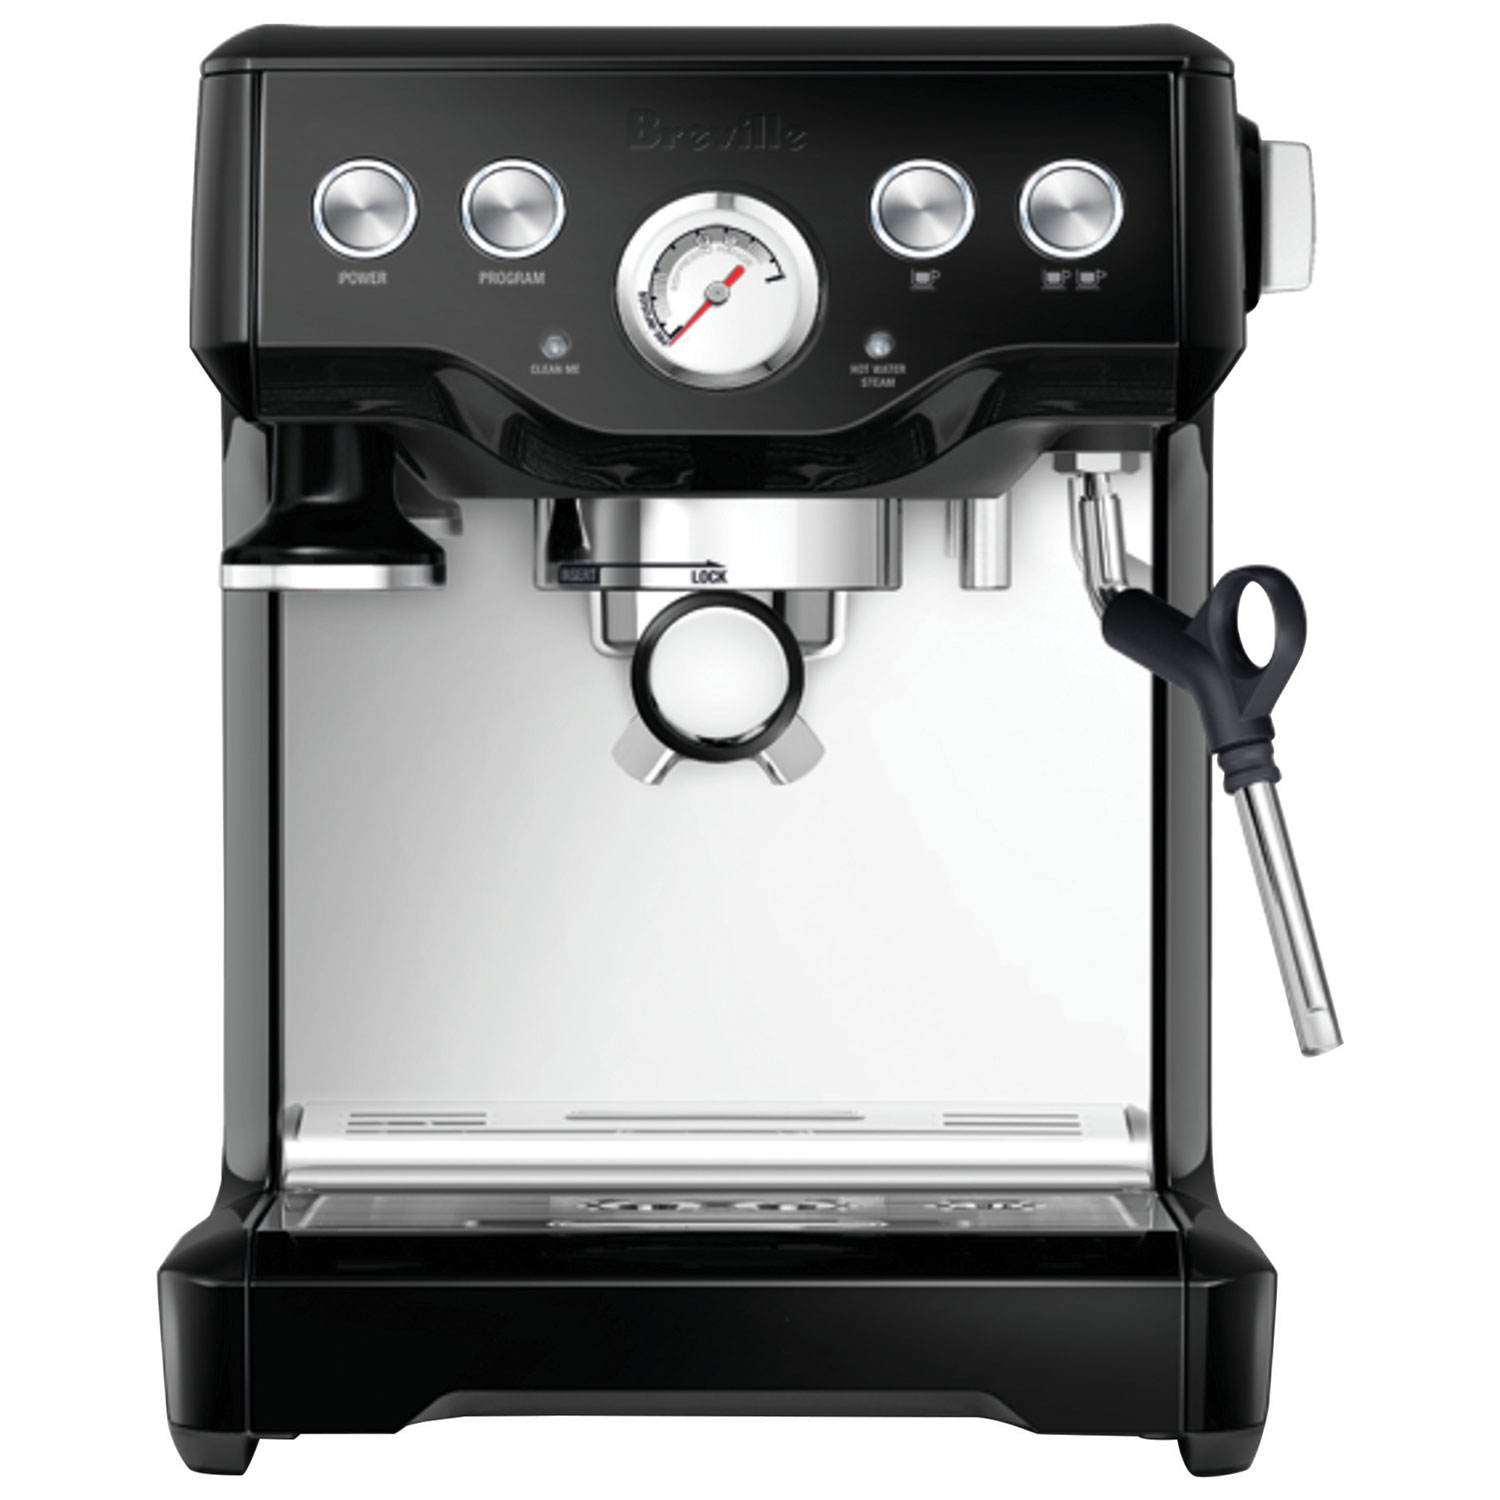 12 days of christmas - breville infuser espresso machine